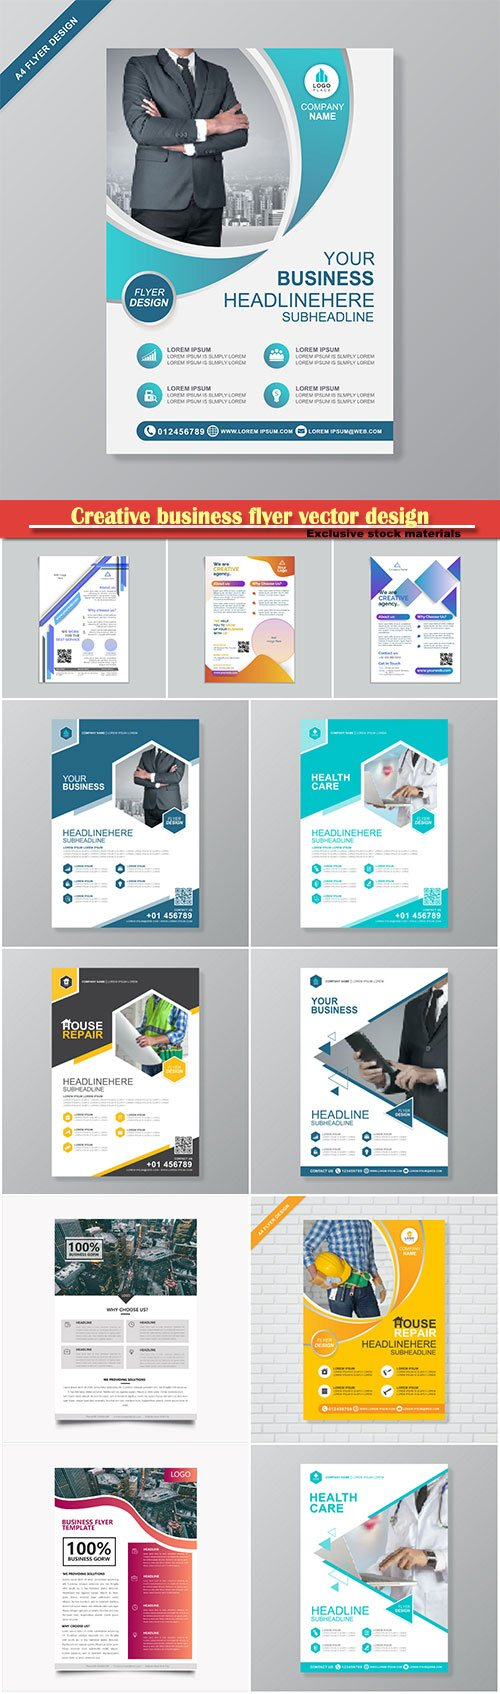 Creative business flyer vector design, corporate template layout presentation